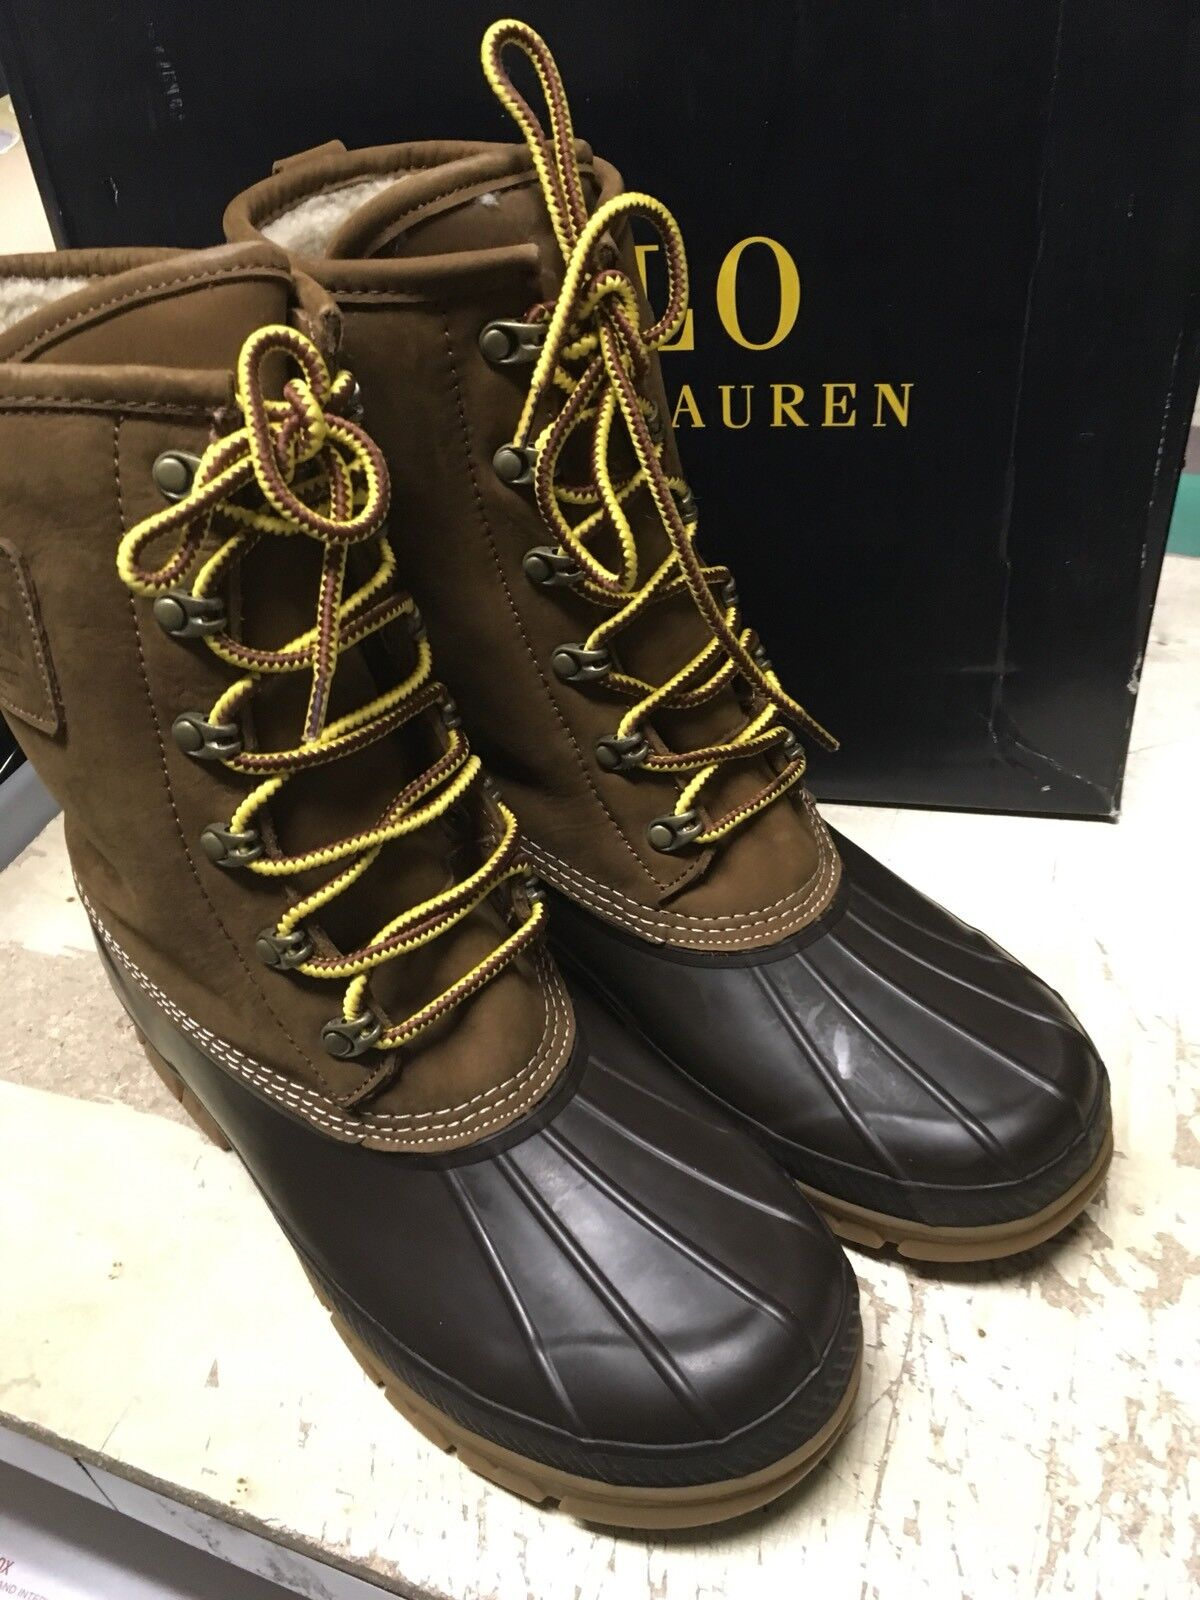 DS MENS Boot Polo Ralph Lauren Romford Boot MENS SHEARLING LINED SNUFF NATURAL SZ 8 b78f6e